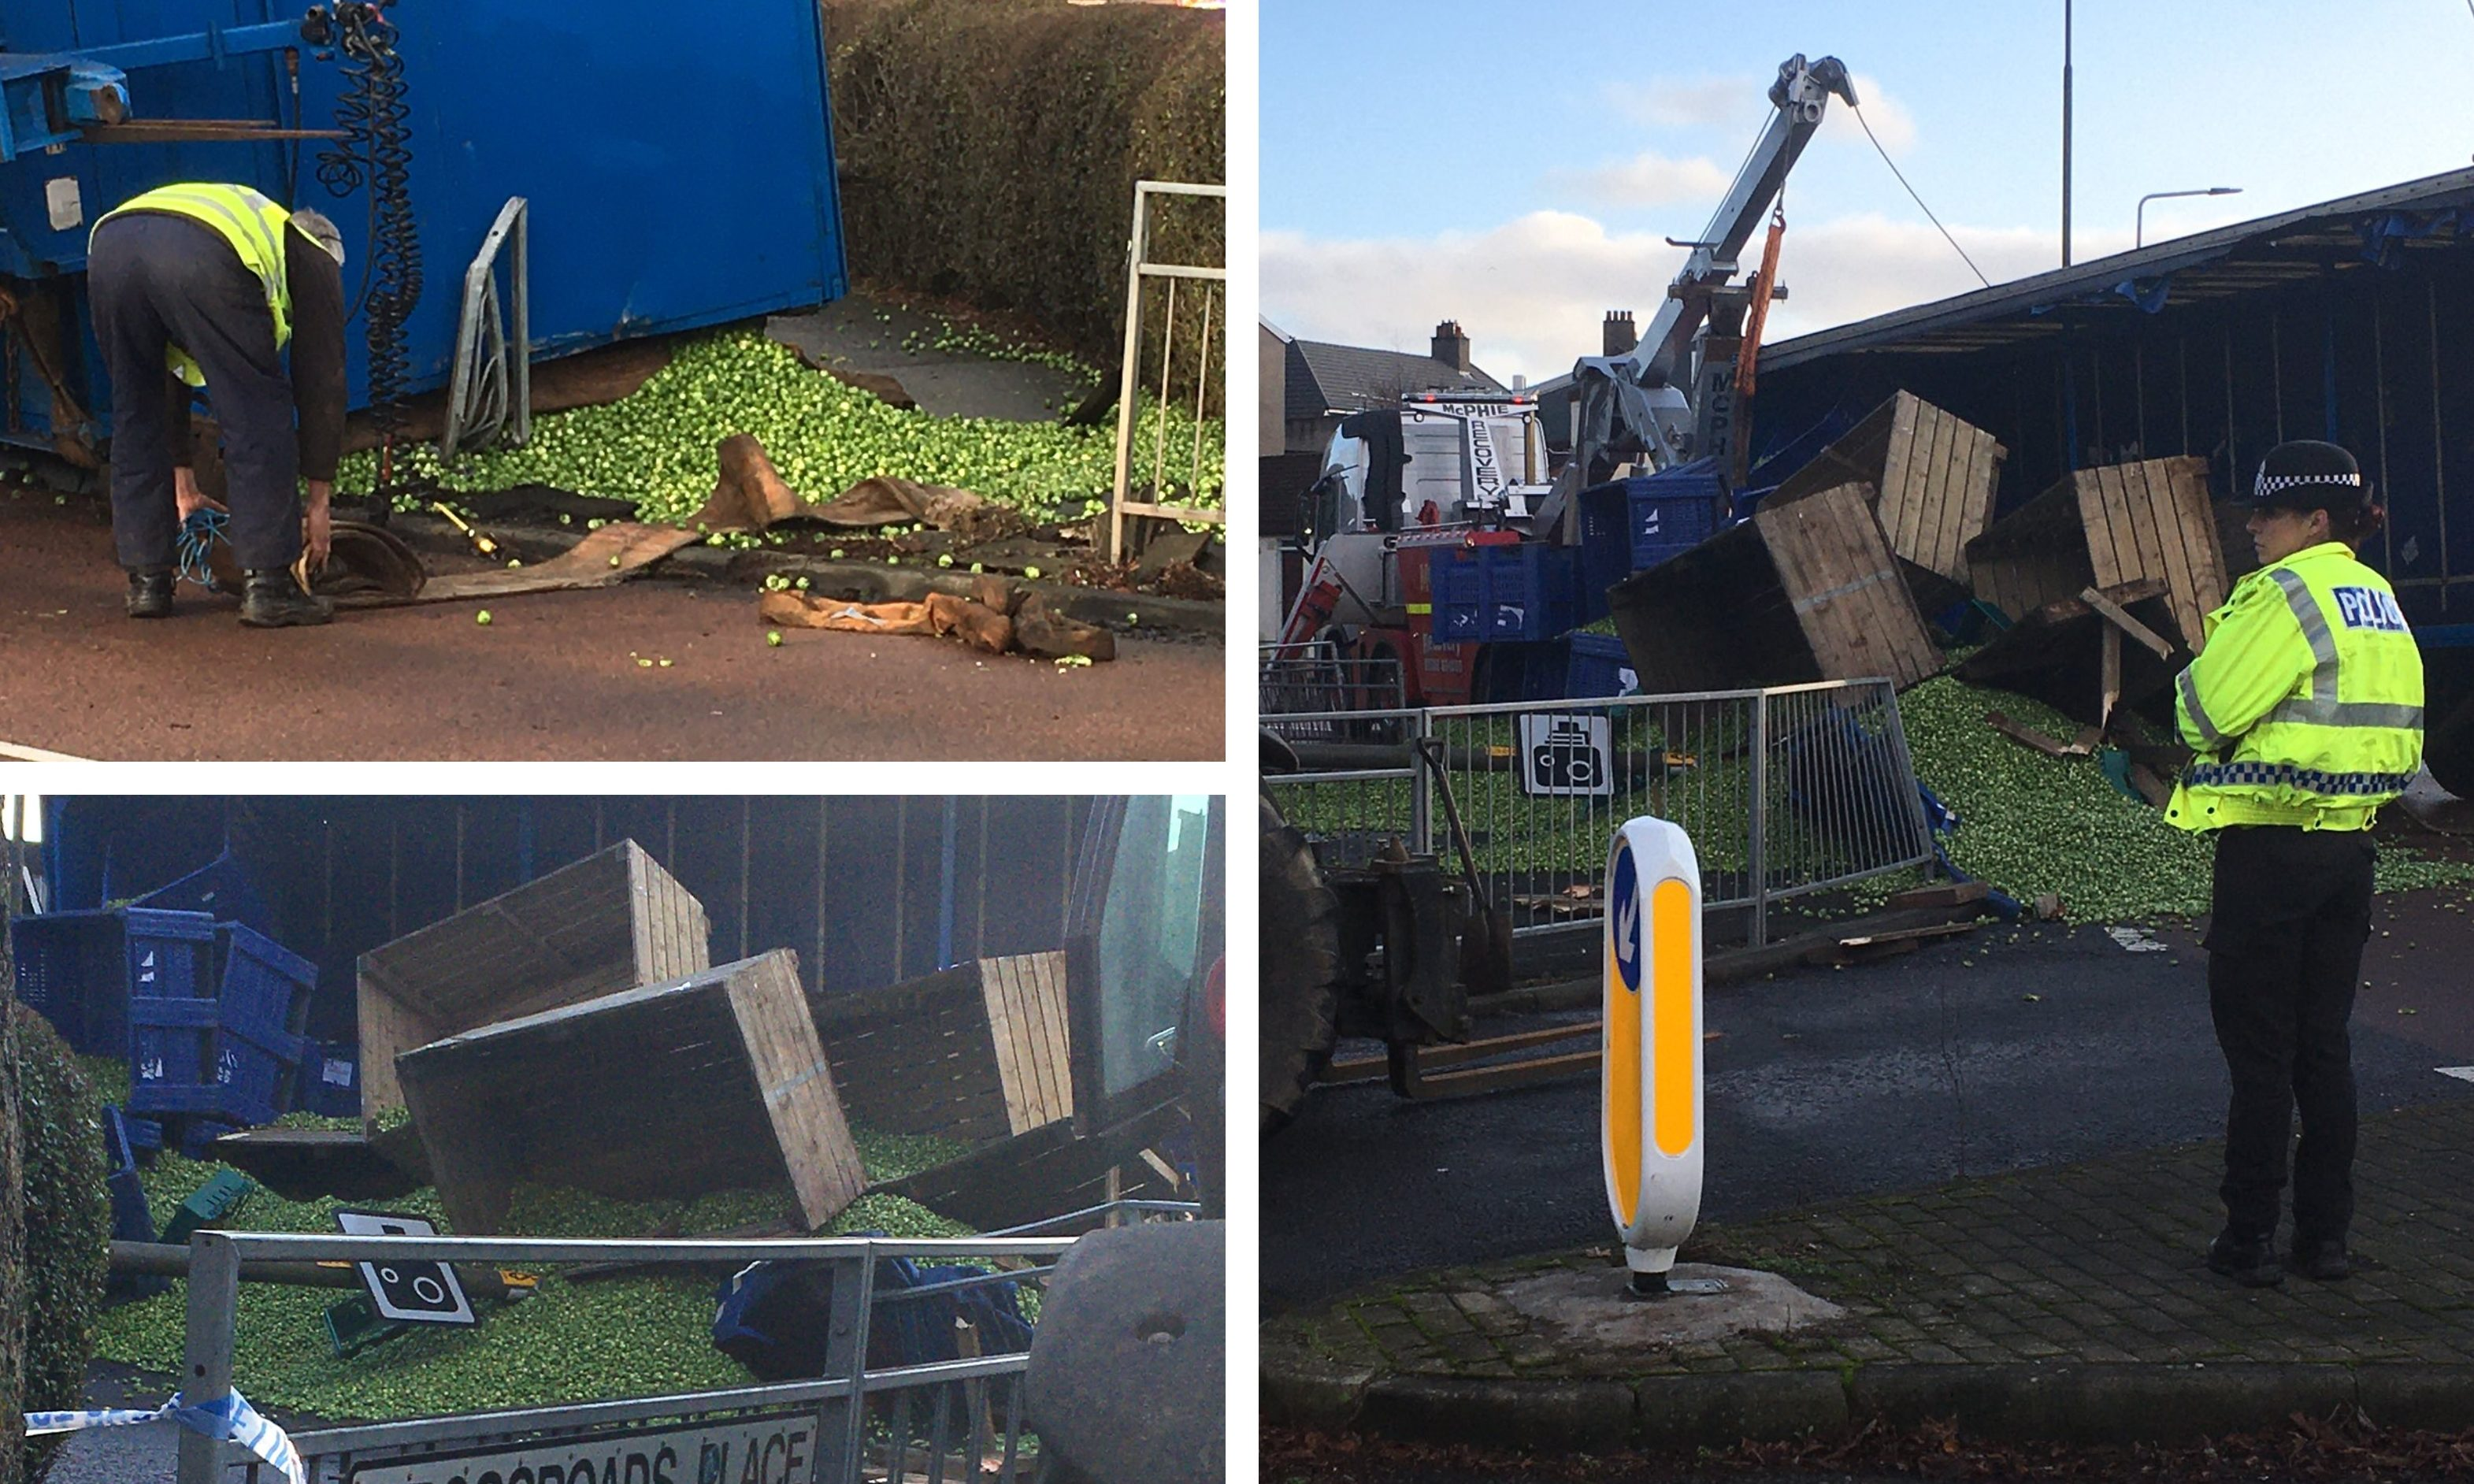 The spilled sprouts in Rosyth.